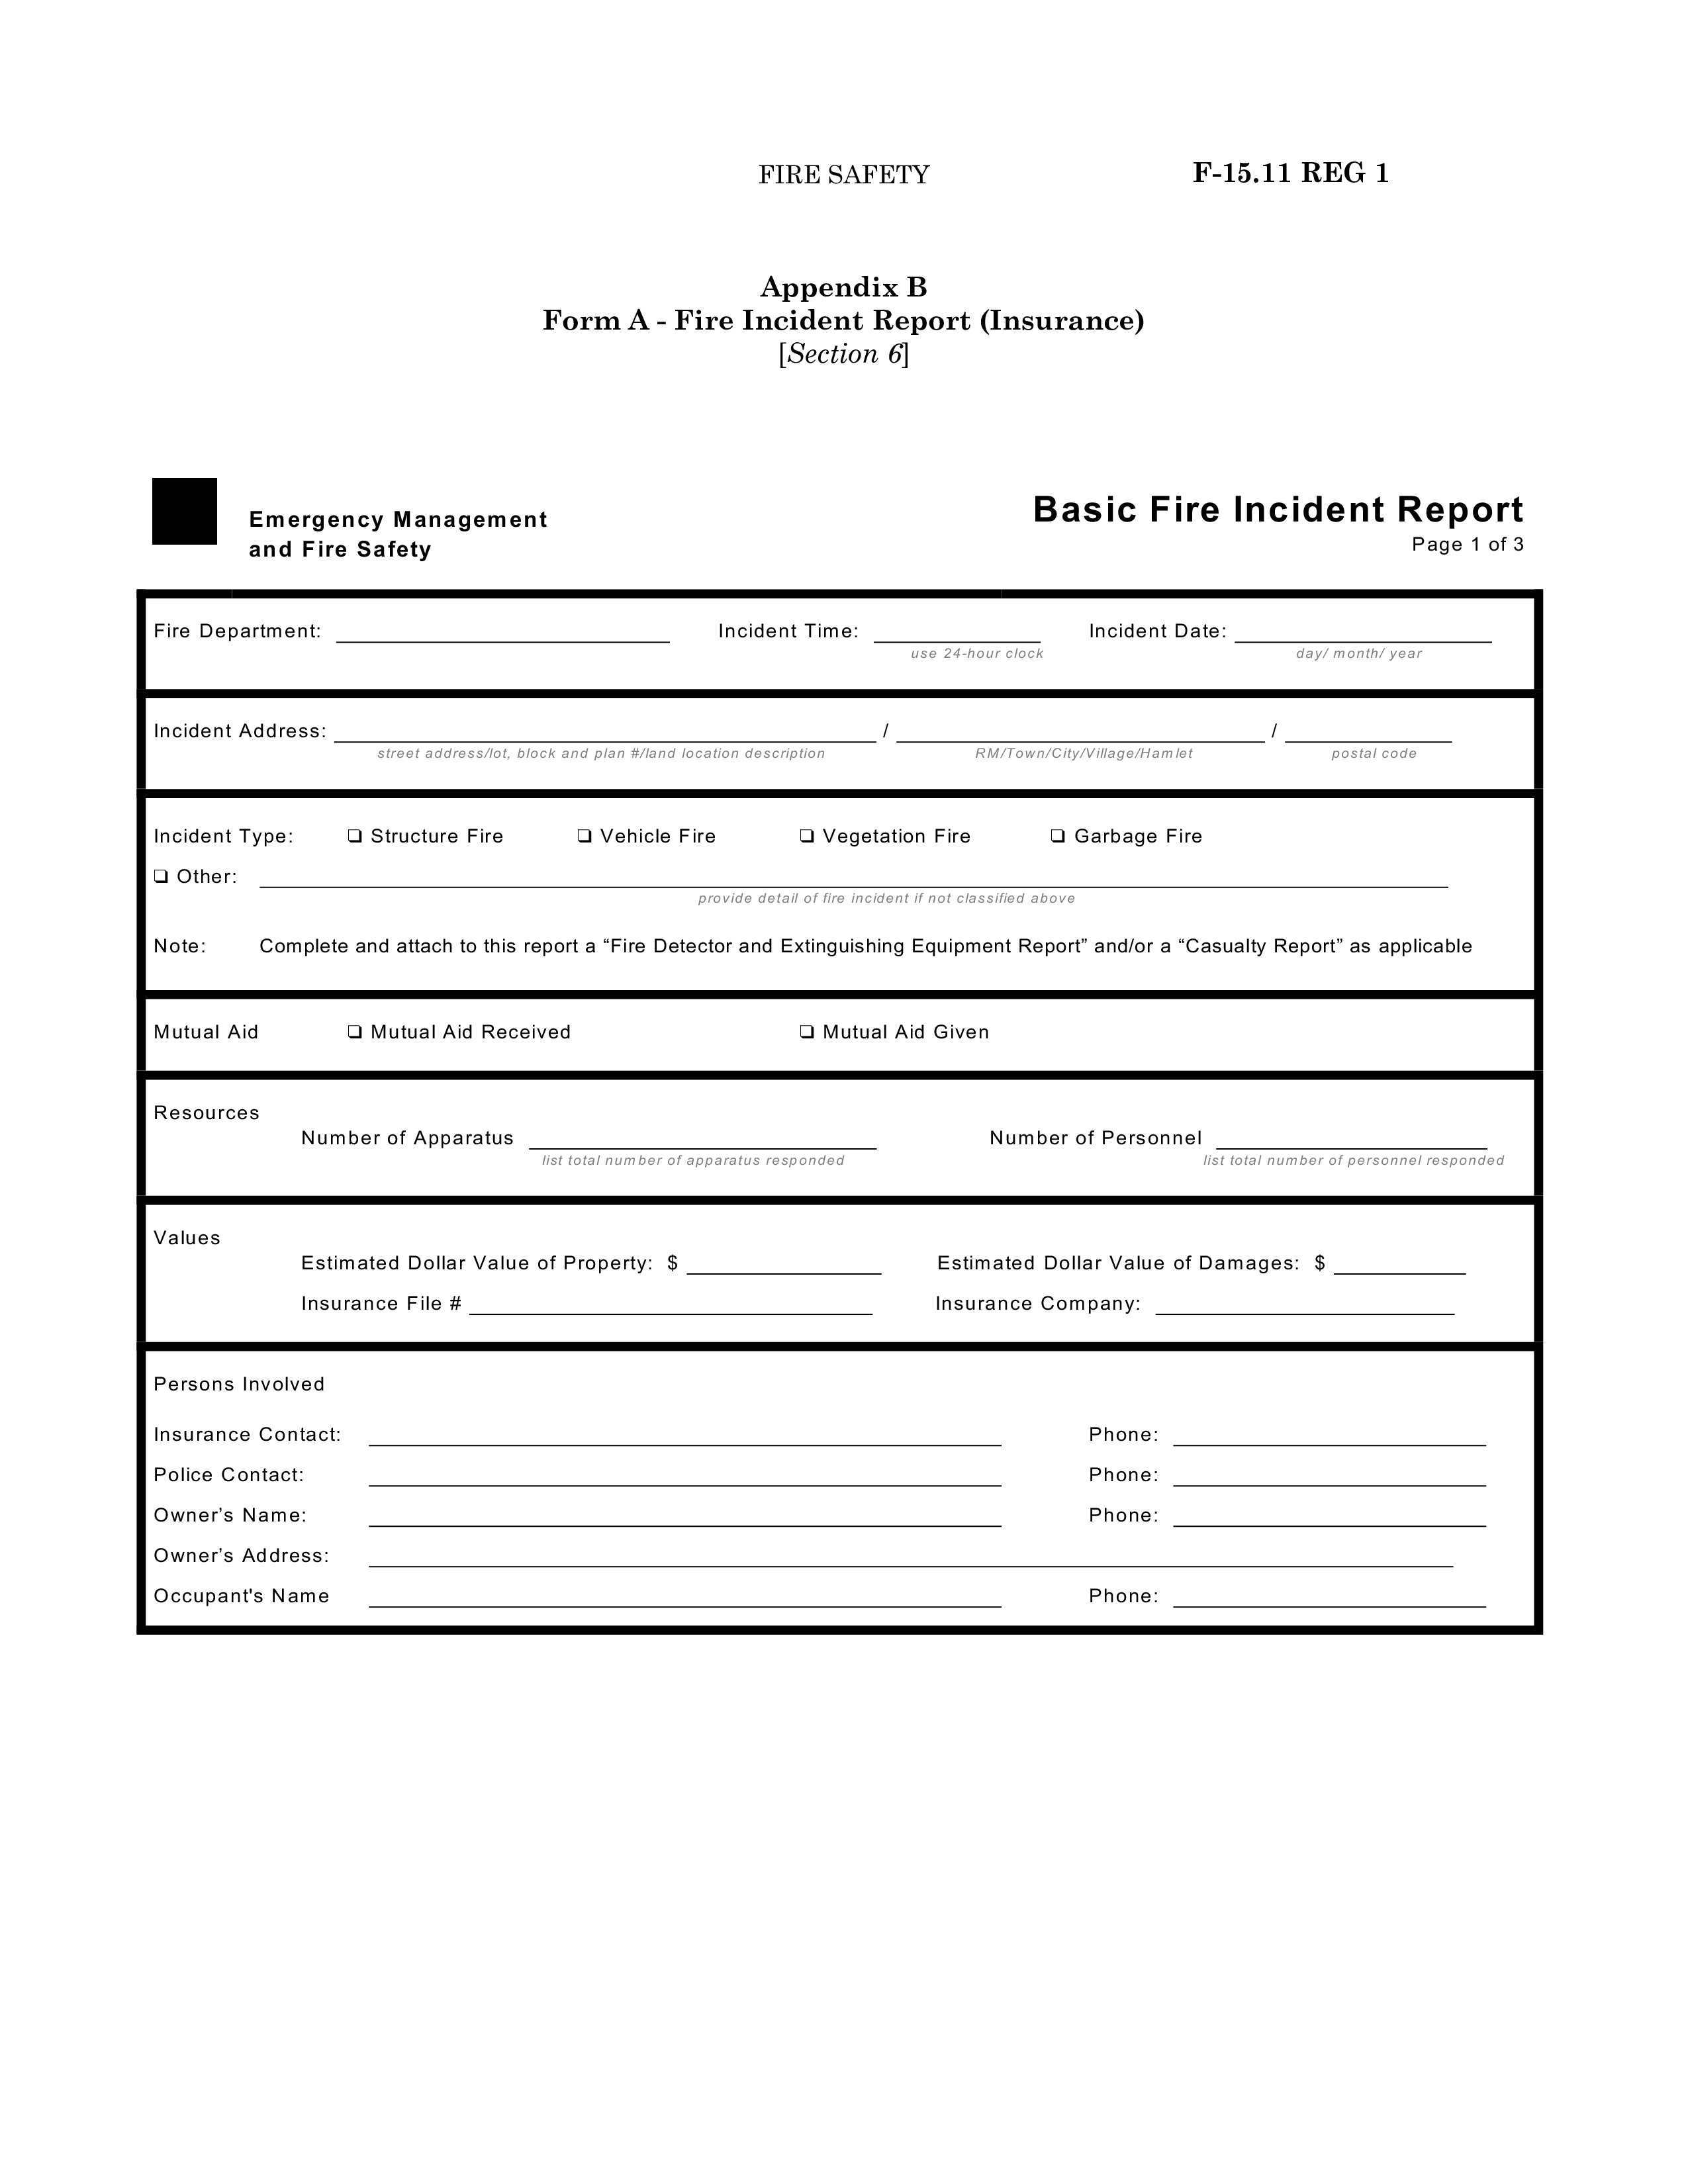 Construction Fire Incident Report Main Image Download Template